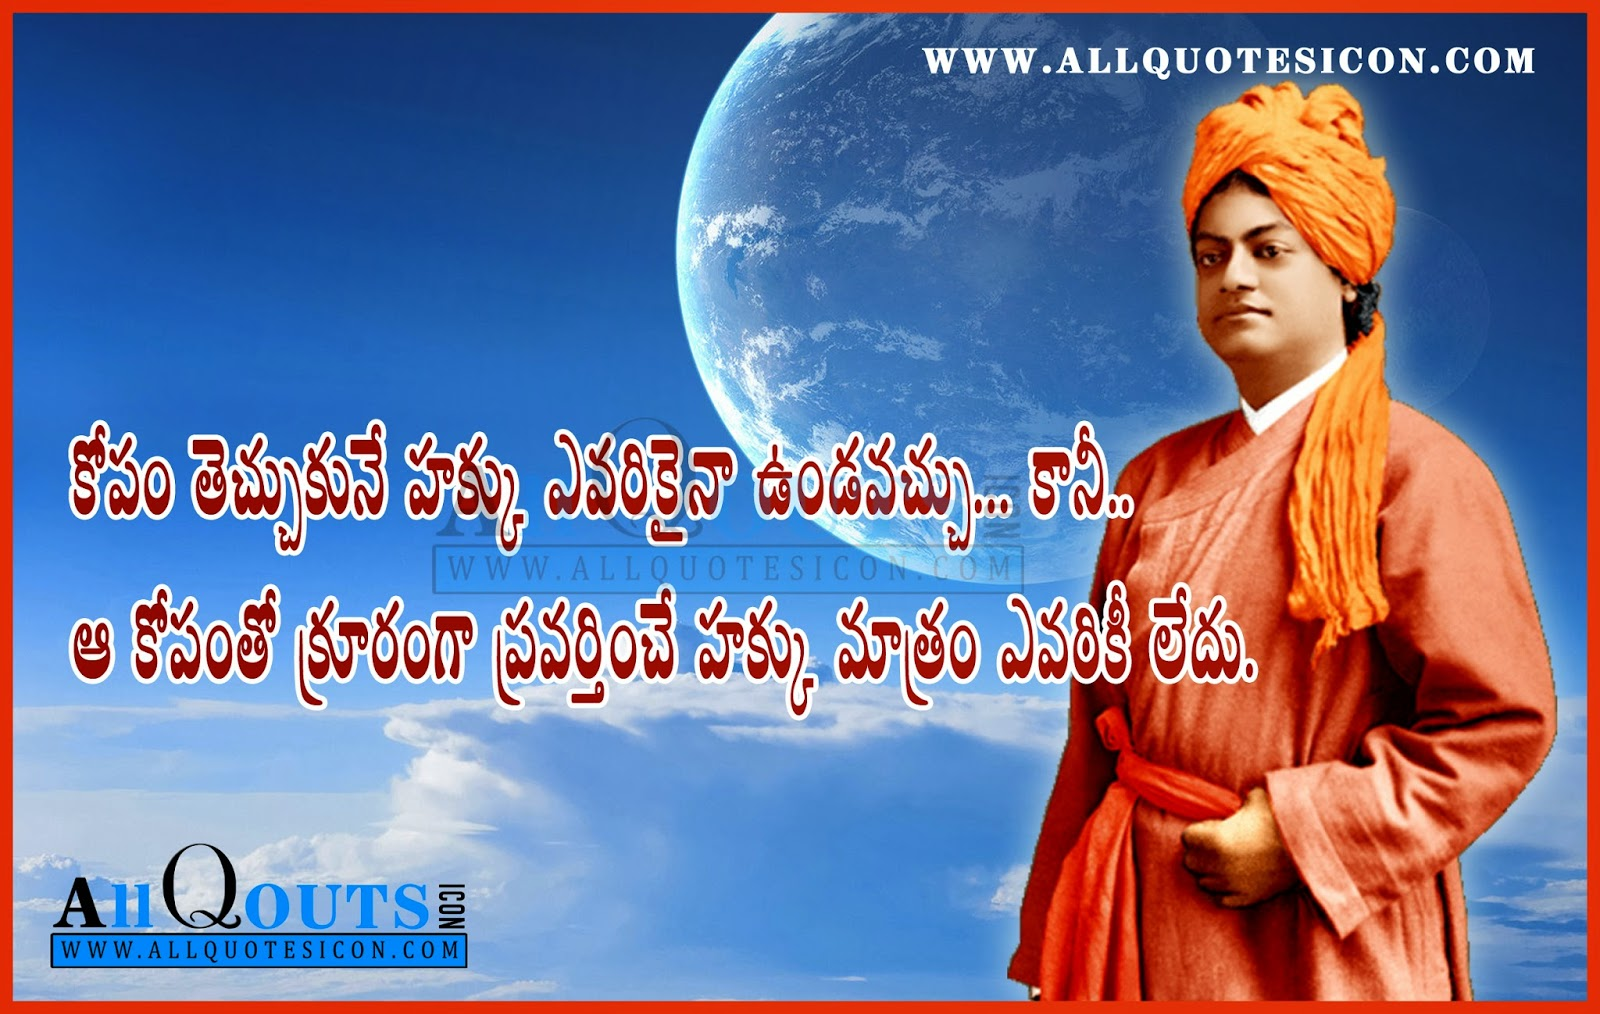 Best-Vivekanada-Telugu-quotes-images-greetings-wishes-thoughts